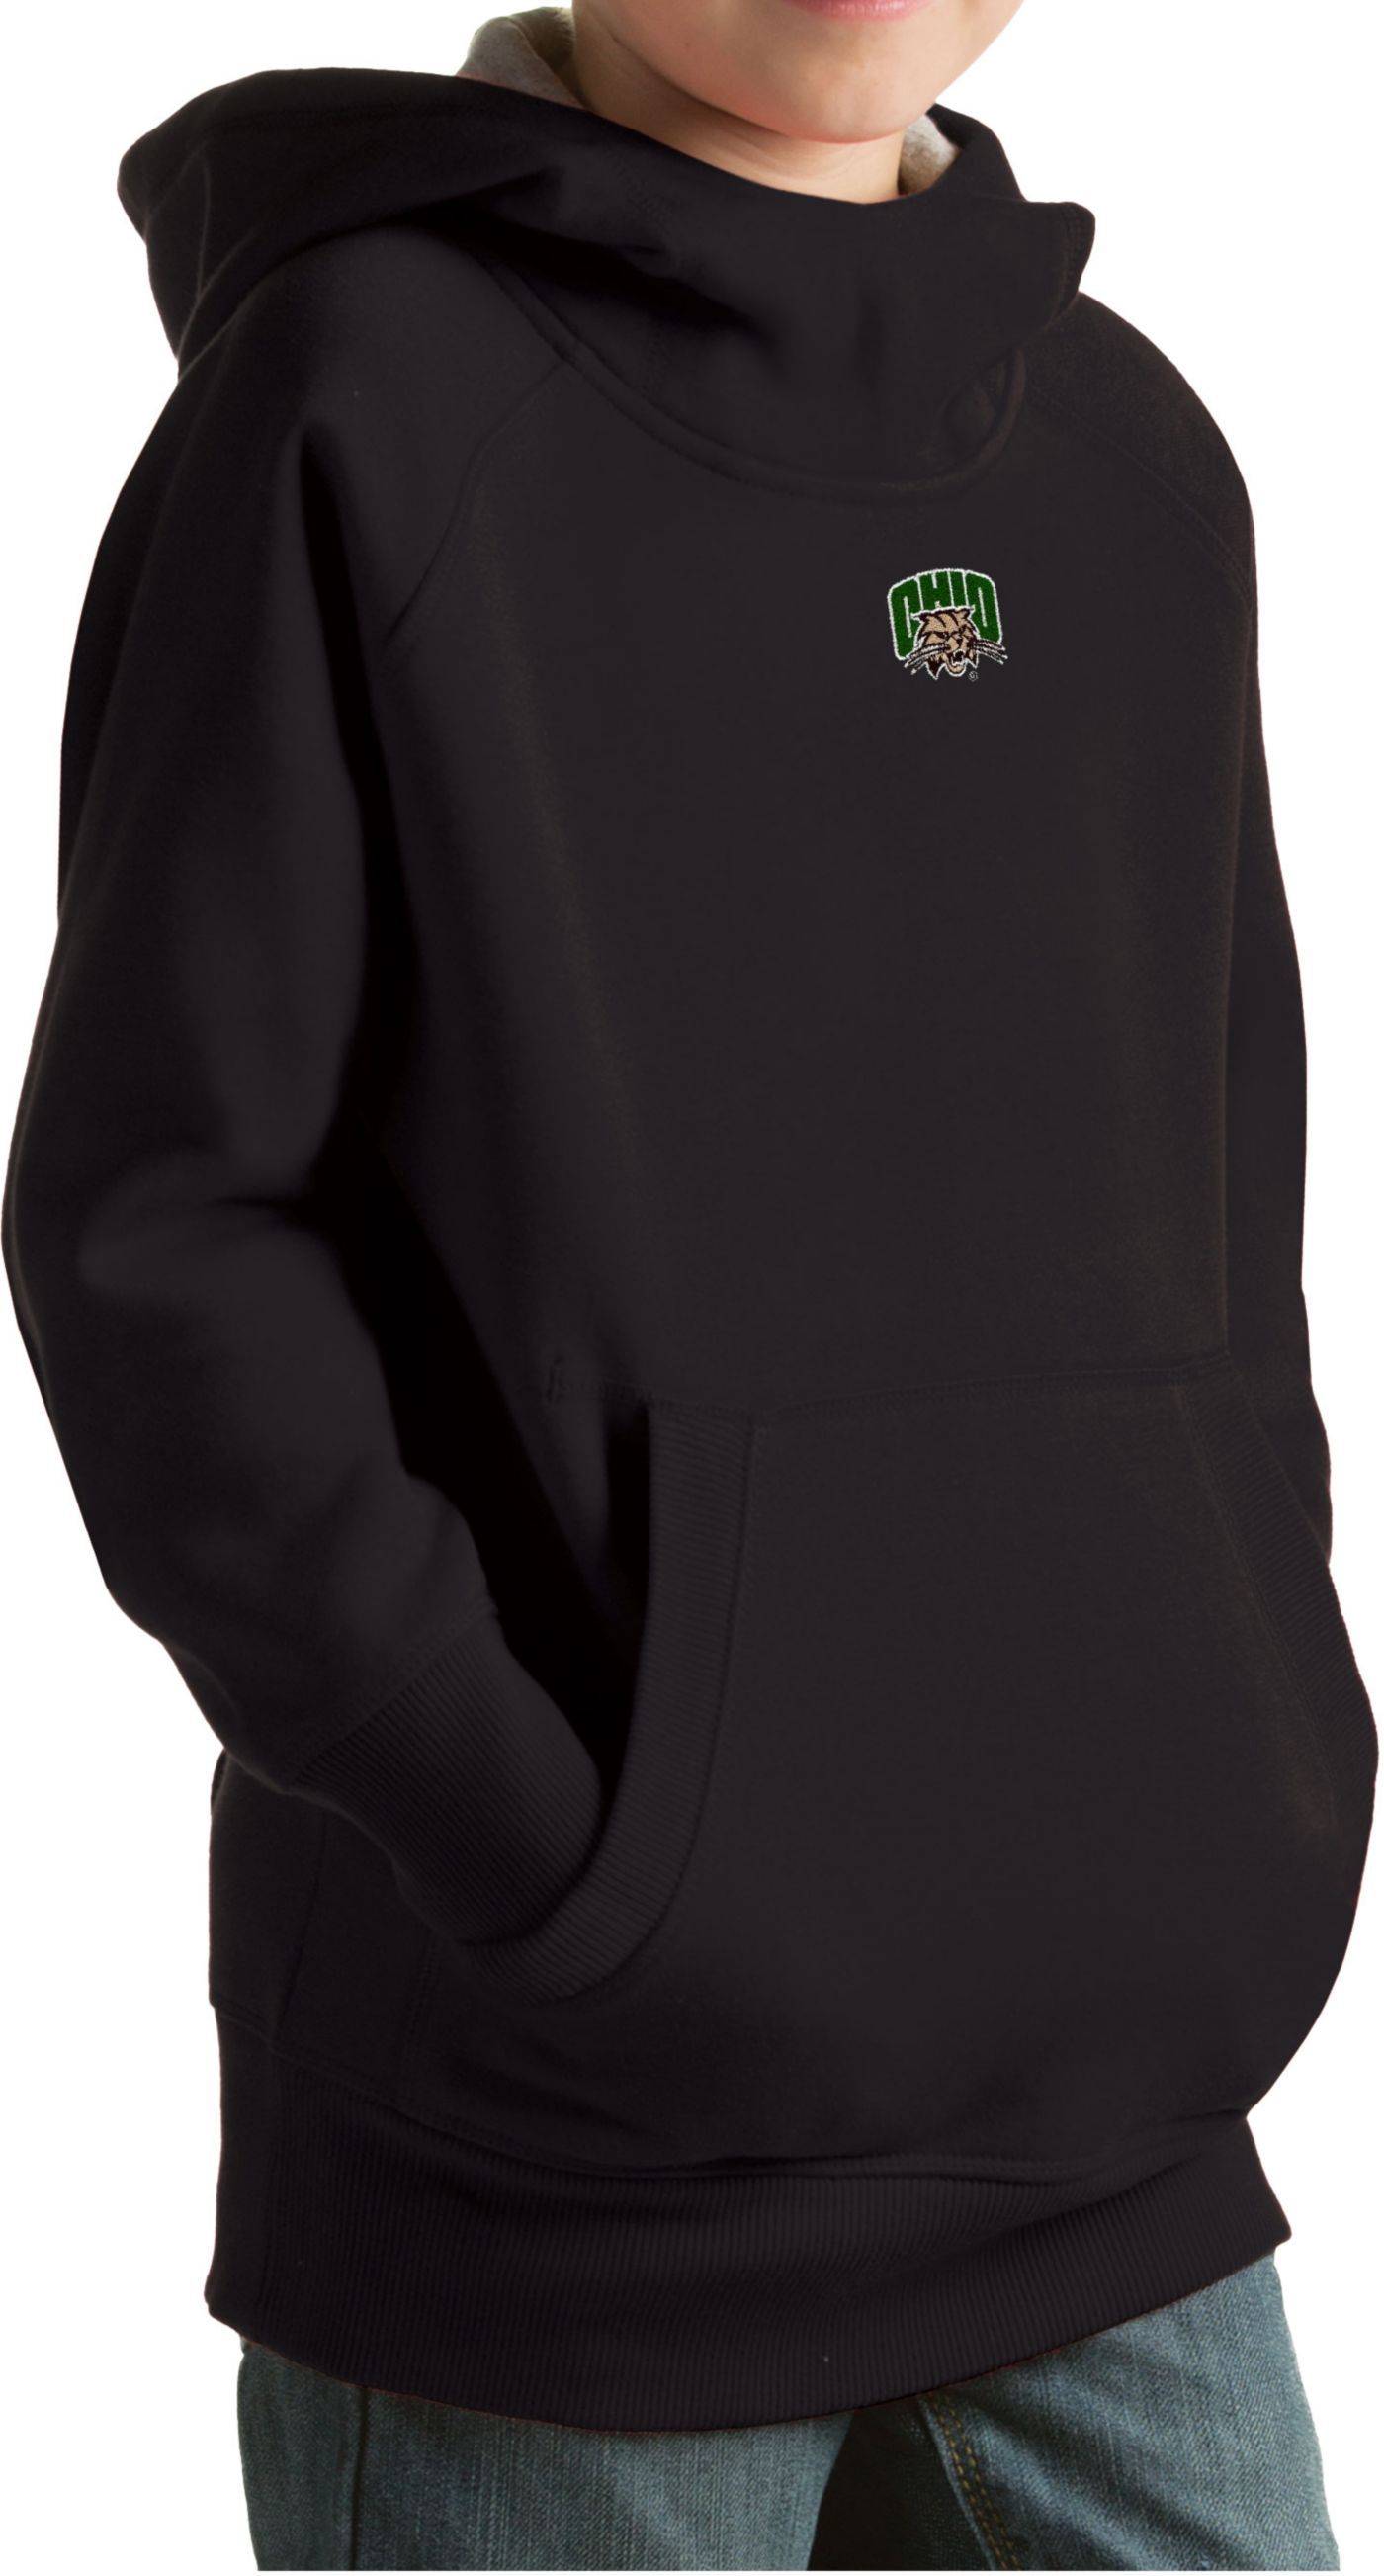 Antigua Youth Ohio Bobcats Black Victory Pullover Hoodie